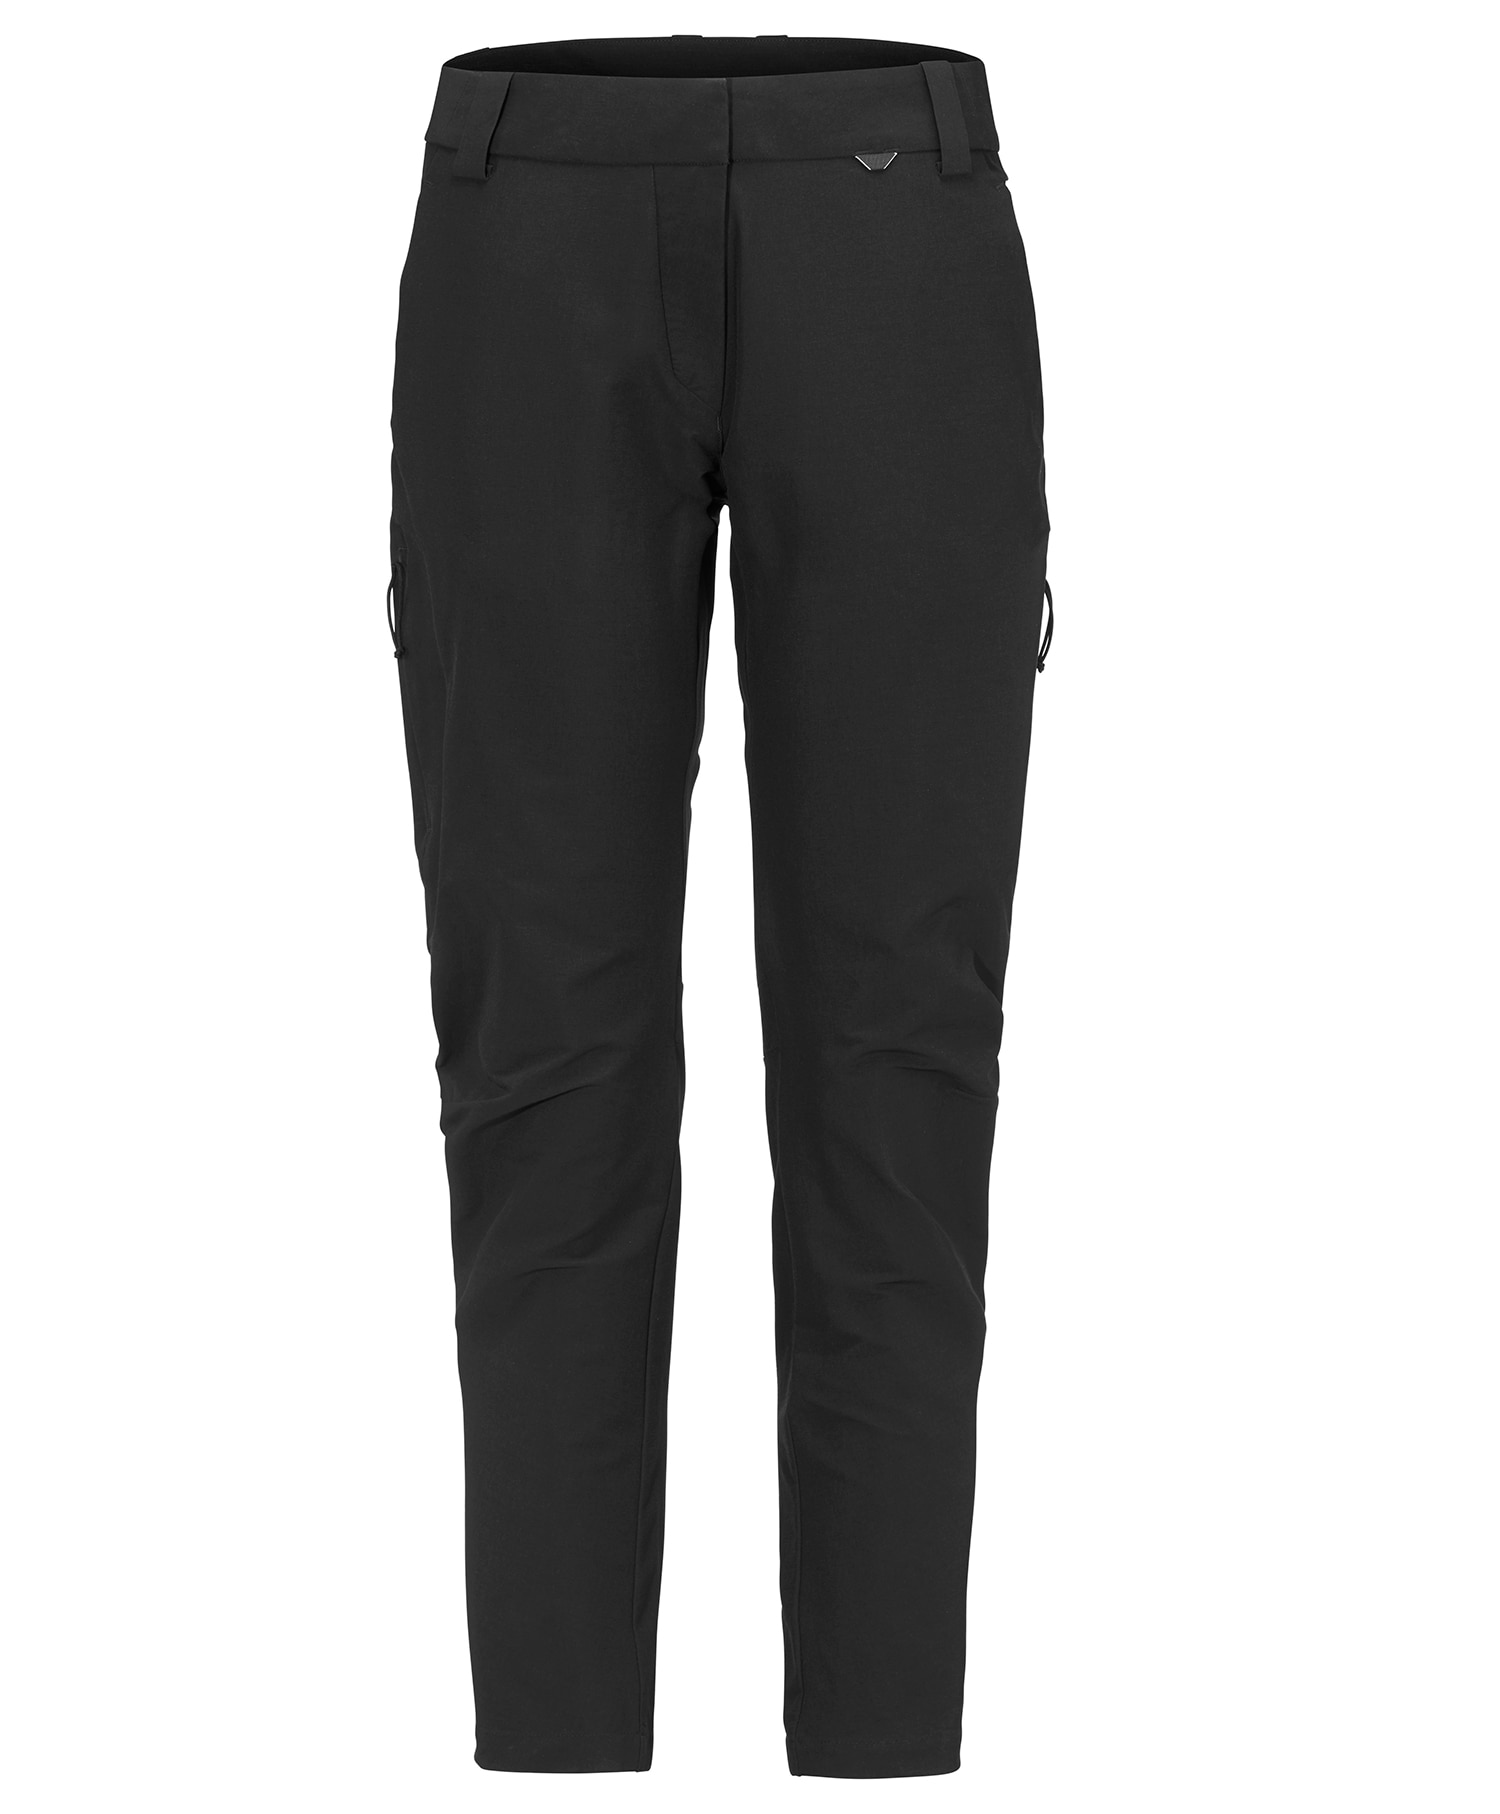 Didriksons Synne wmns Pant